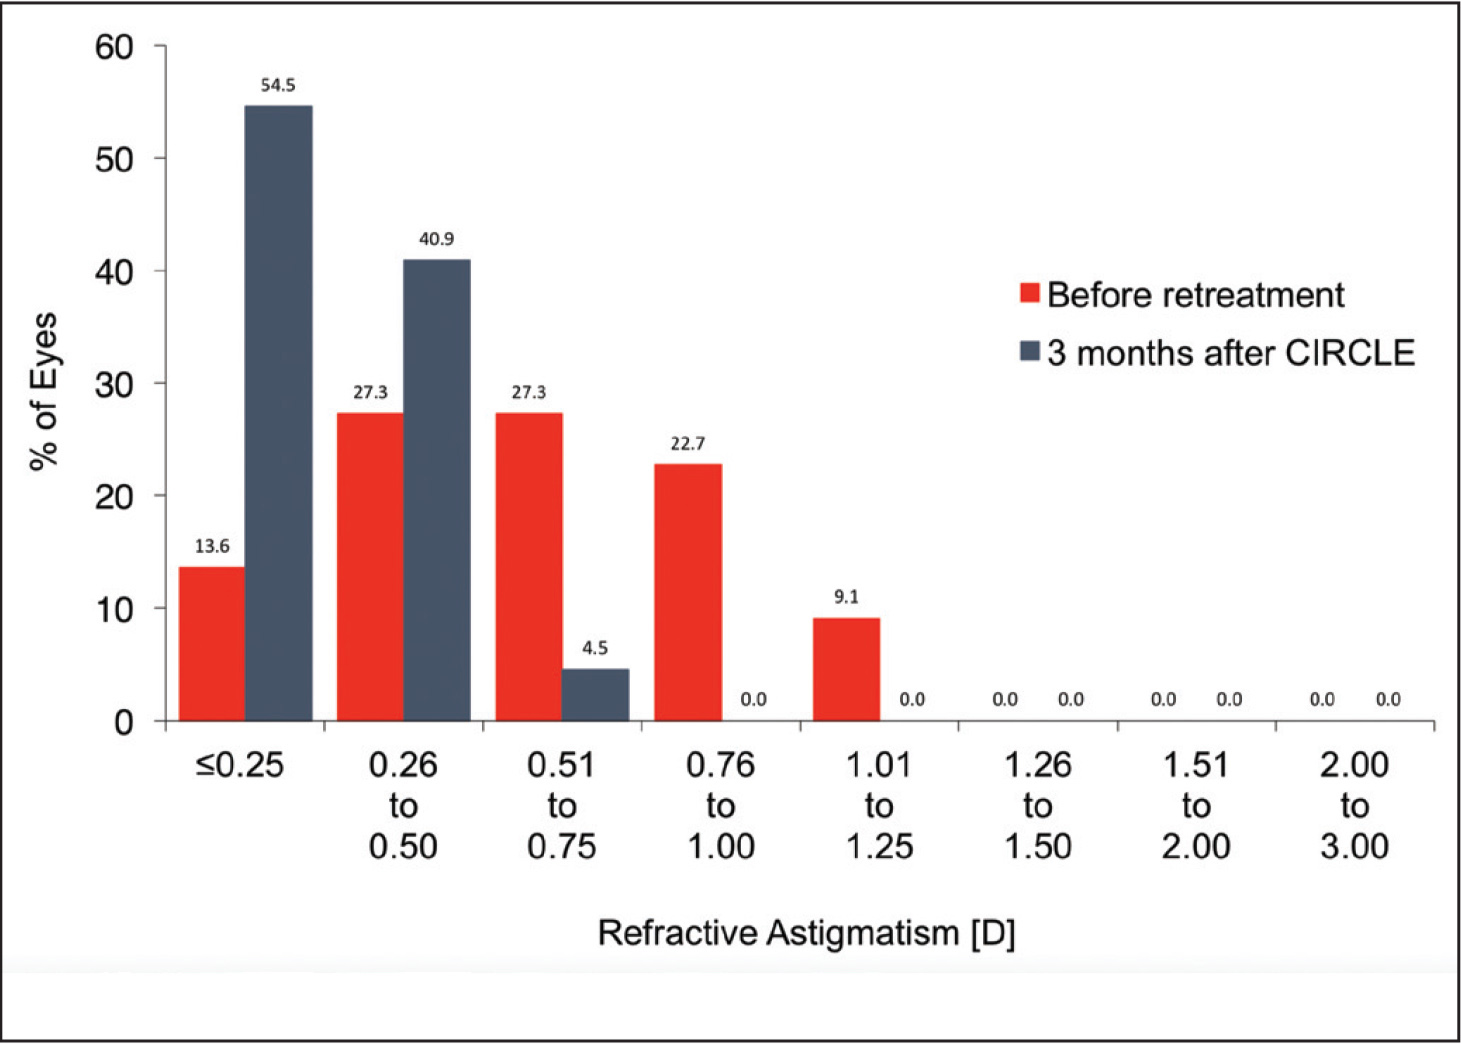 Distribution of refractive astigmatism. The number of eyes within 0.50 diopters (D) of astigmatism increased from 40.9% to 95.4%. After re-treatment, no eyes had an astigmatism of greater than 0.75 D (before enhancement: 31.8%).